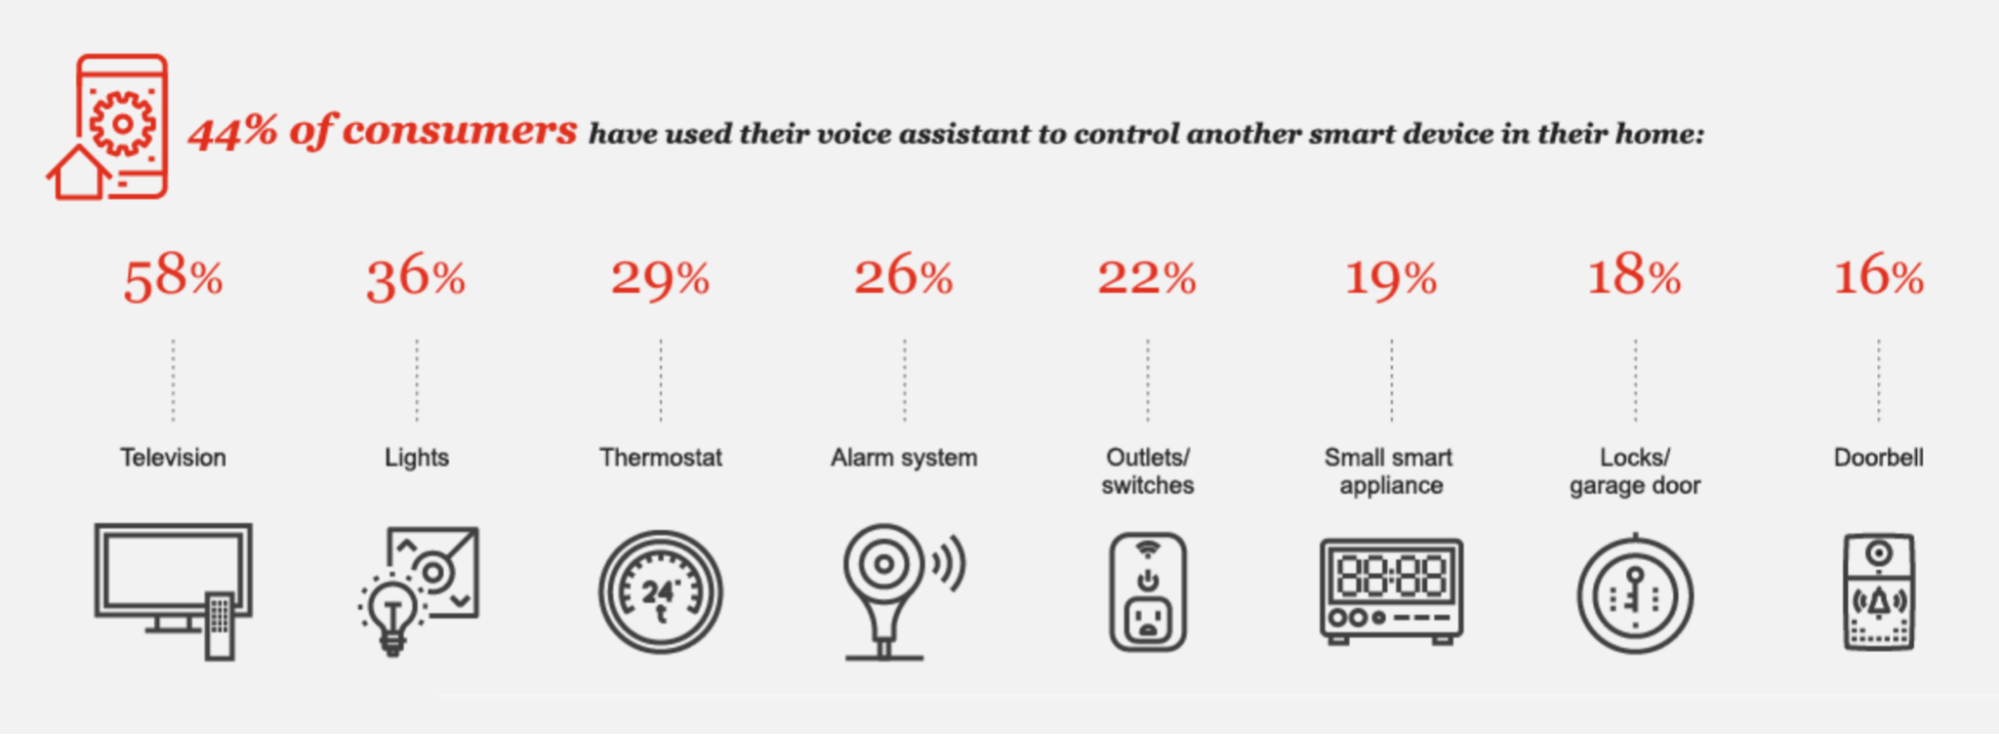 Voice Search Usage Trends